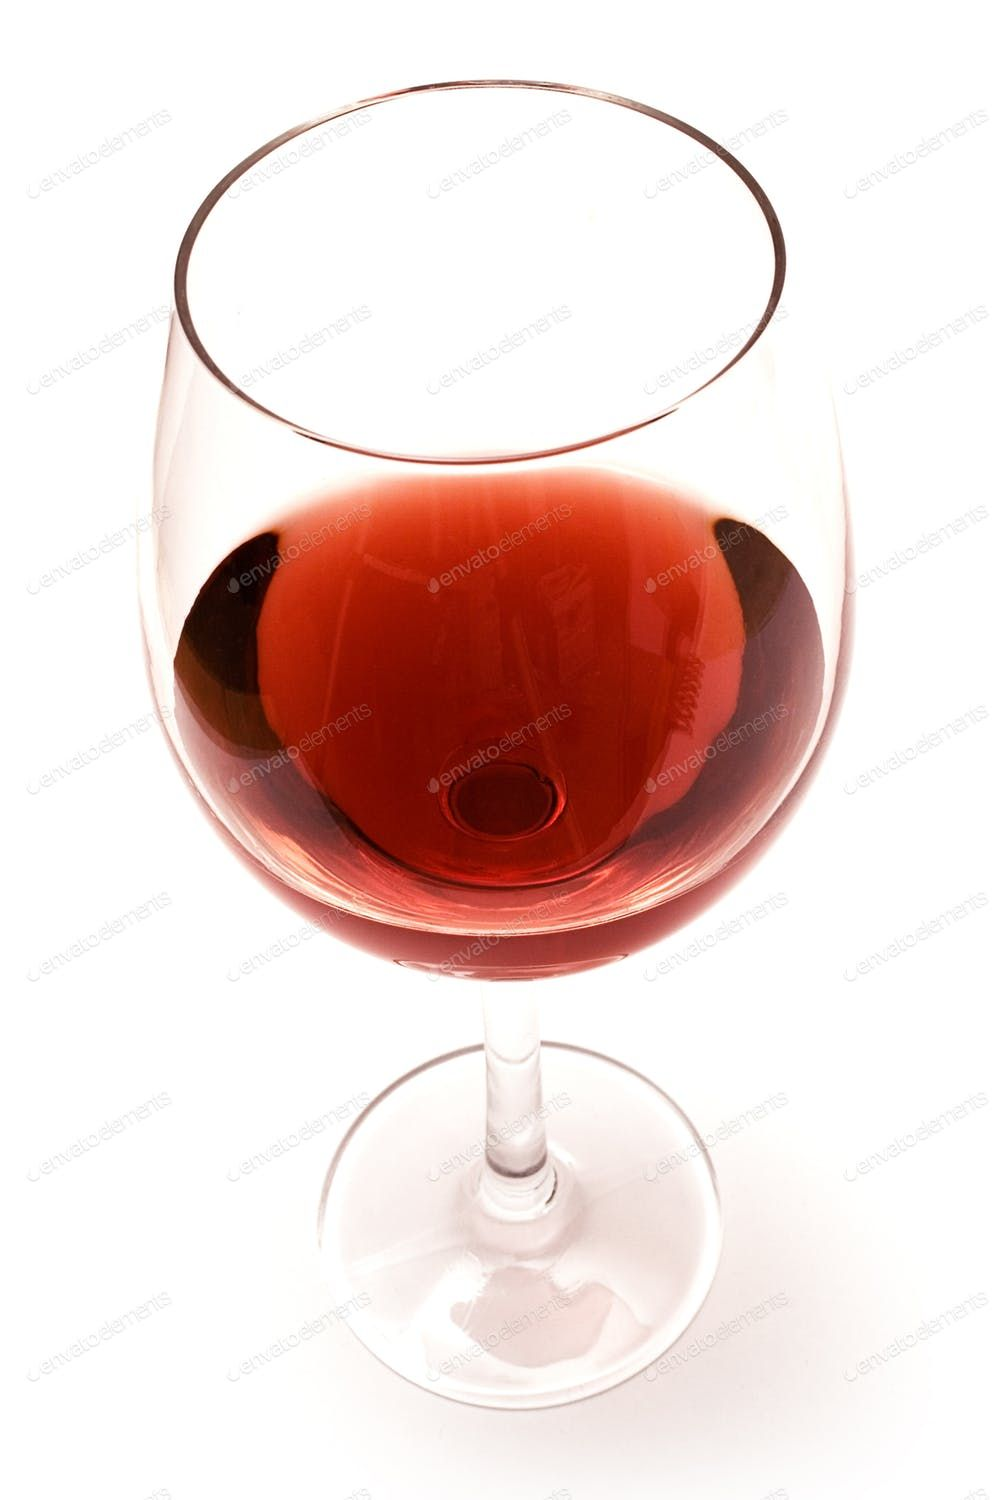 Glass Of Red Wine Isolated On A White Background Photo By Mnmlst0 On Envato Elements Red Wine Wine Glass